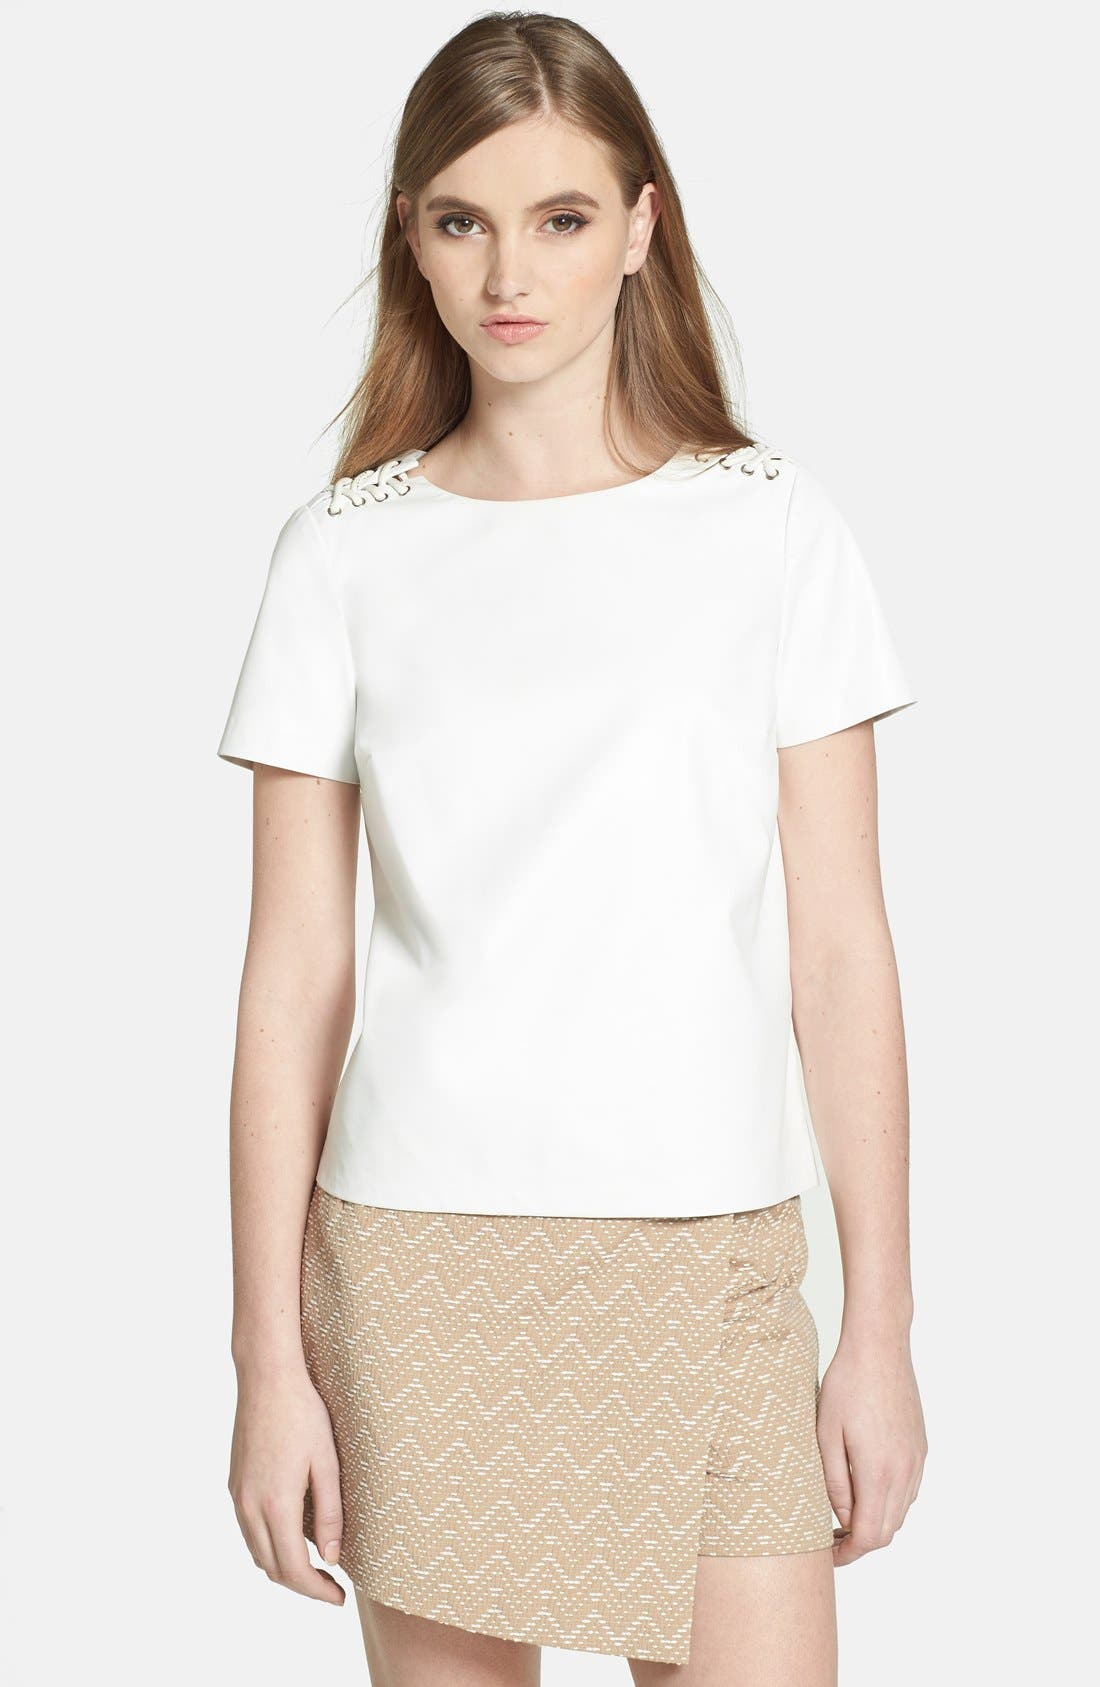 Alternate Image 1 Selected - 1.STATE Lace Up Shoulder Faux Leather Top